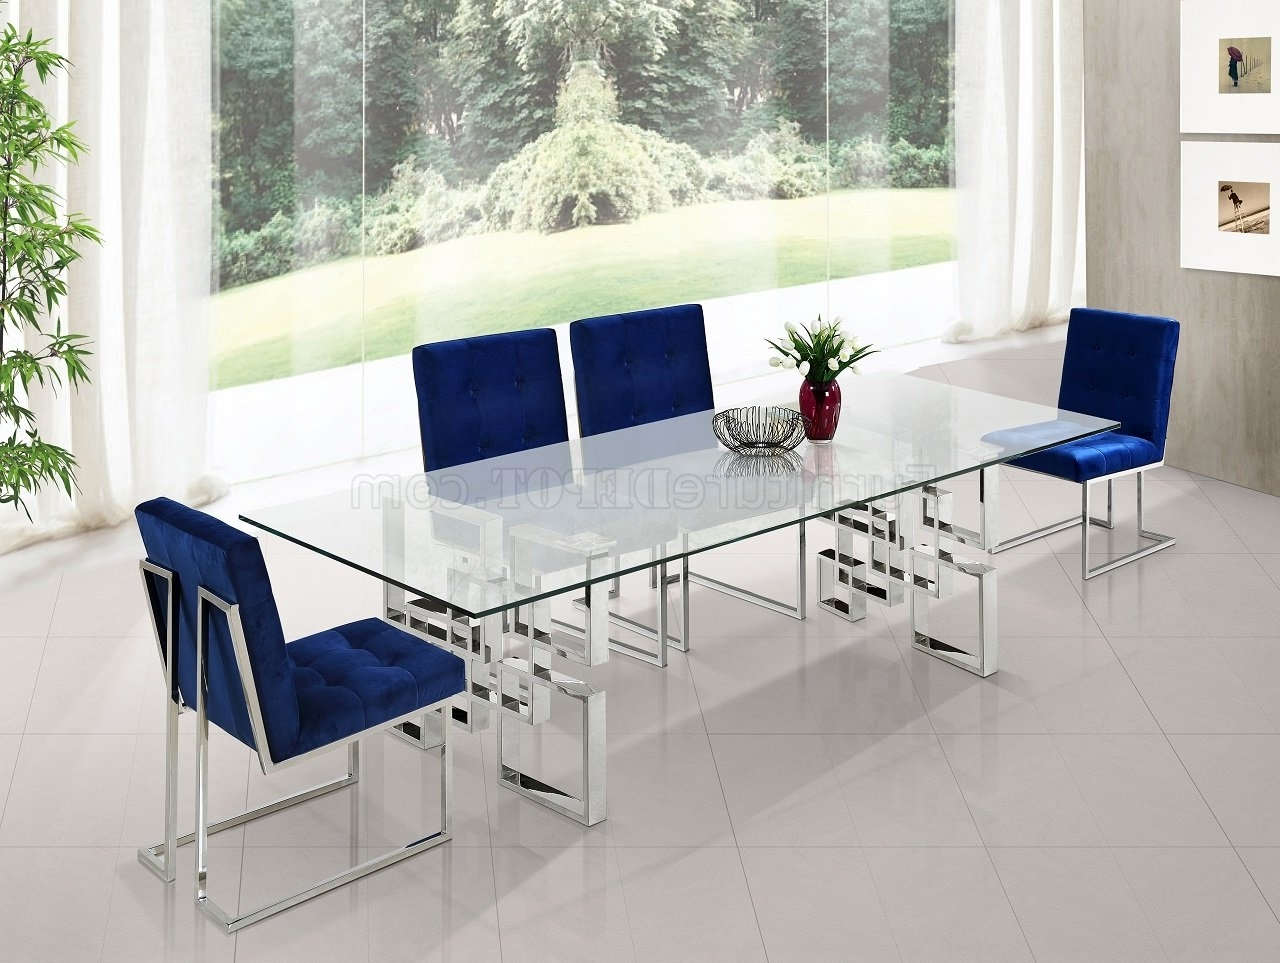 Chrome Dining Sets In Well Liked Alexis 731 Chrome Dining Table W/glass Top & Optional Chairs (Gallery 10 of 25)